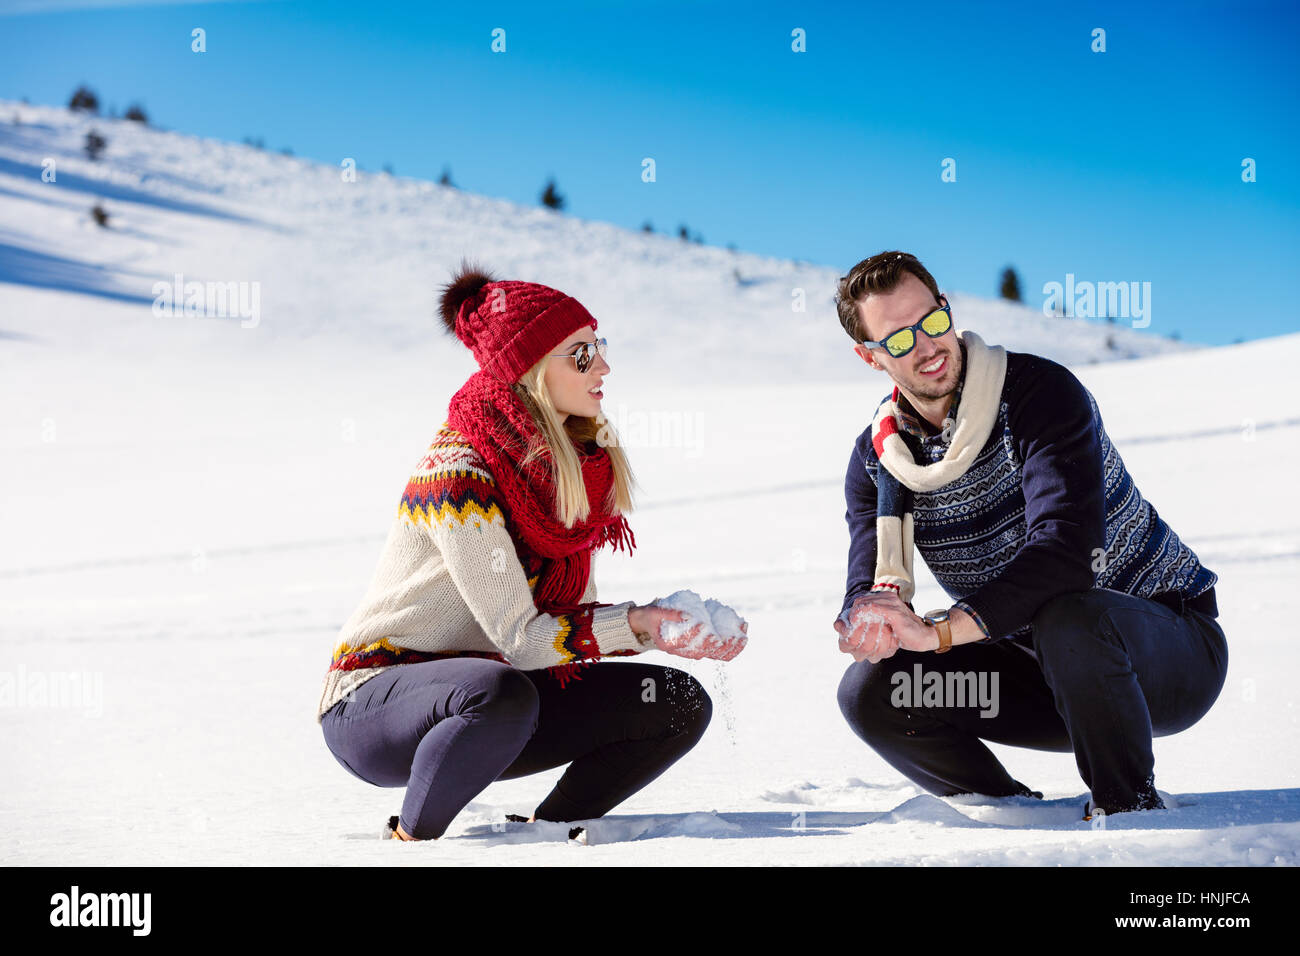 Snowball fight. Winter couple having fun playing in snow outdoors. Young joyful happy multi-racial couple. - Stock Image